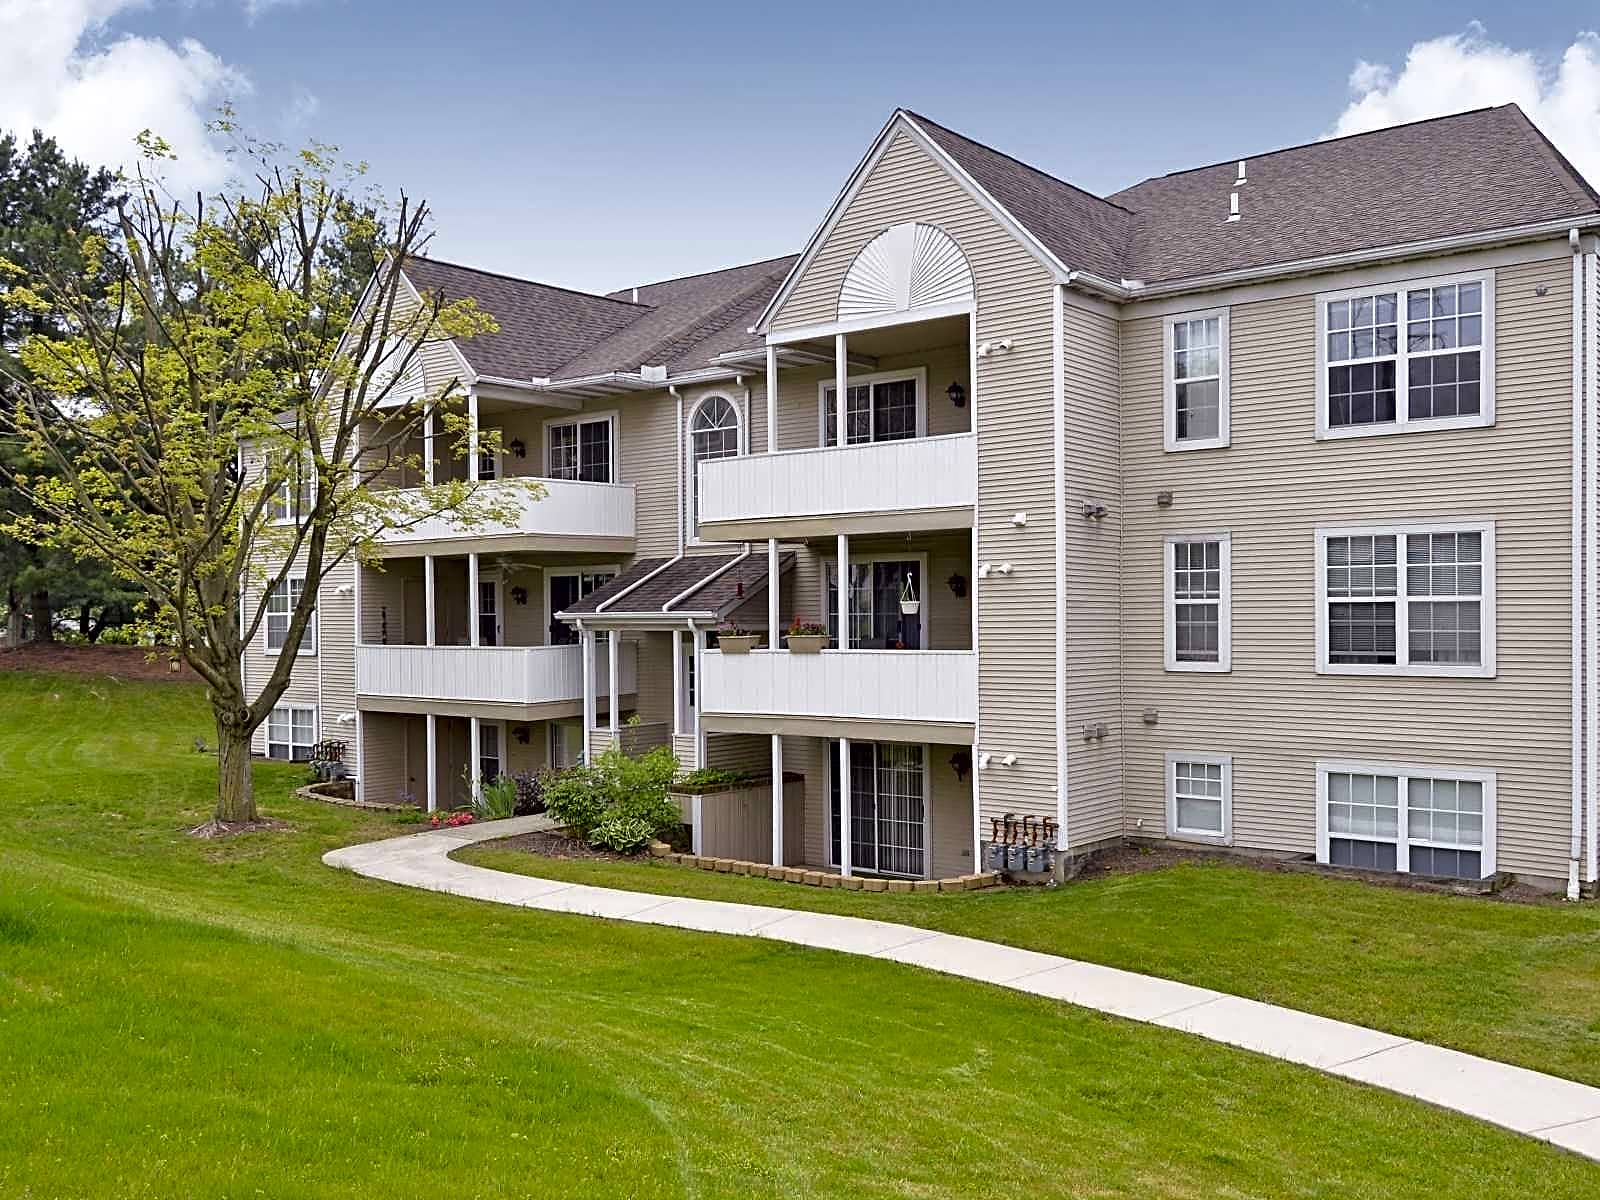 Apartments Near Dickinson Country Walk for Dickinson College Students in Carlisle, PA